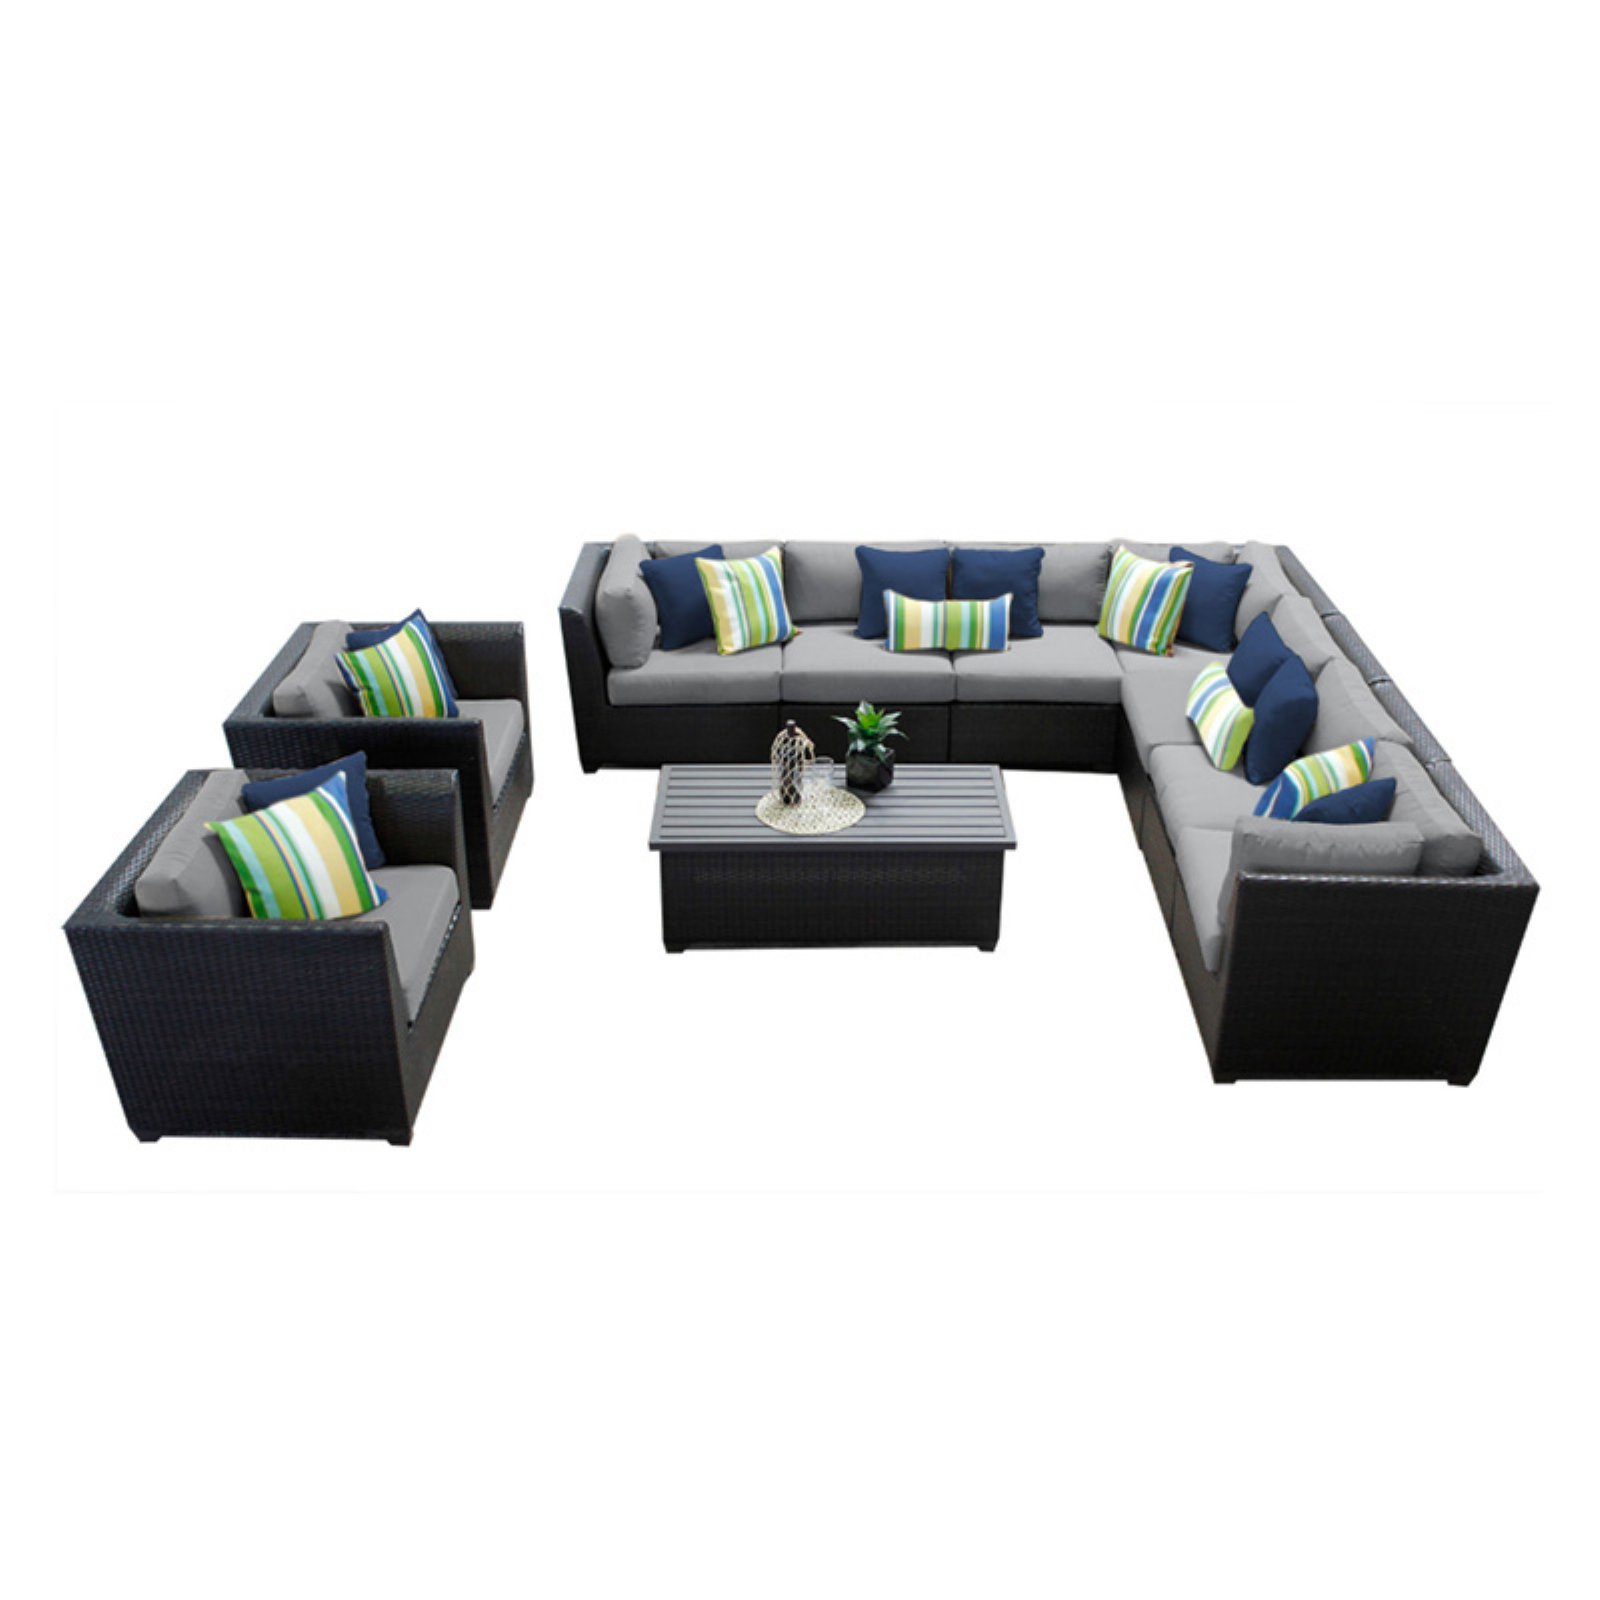 TK Classics Barbados Wicker 10 Piece Patio Conversation Set with Coffee Table with 2 Sets of Cushion Covers